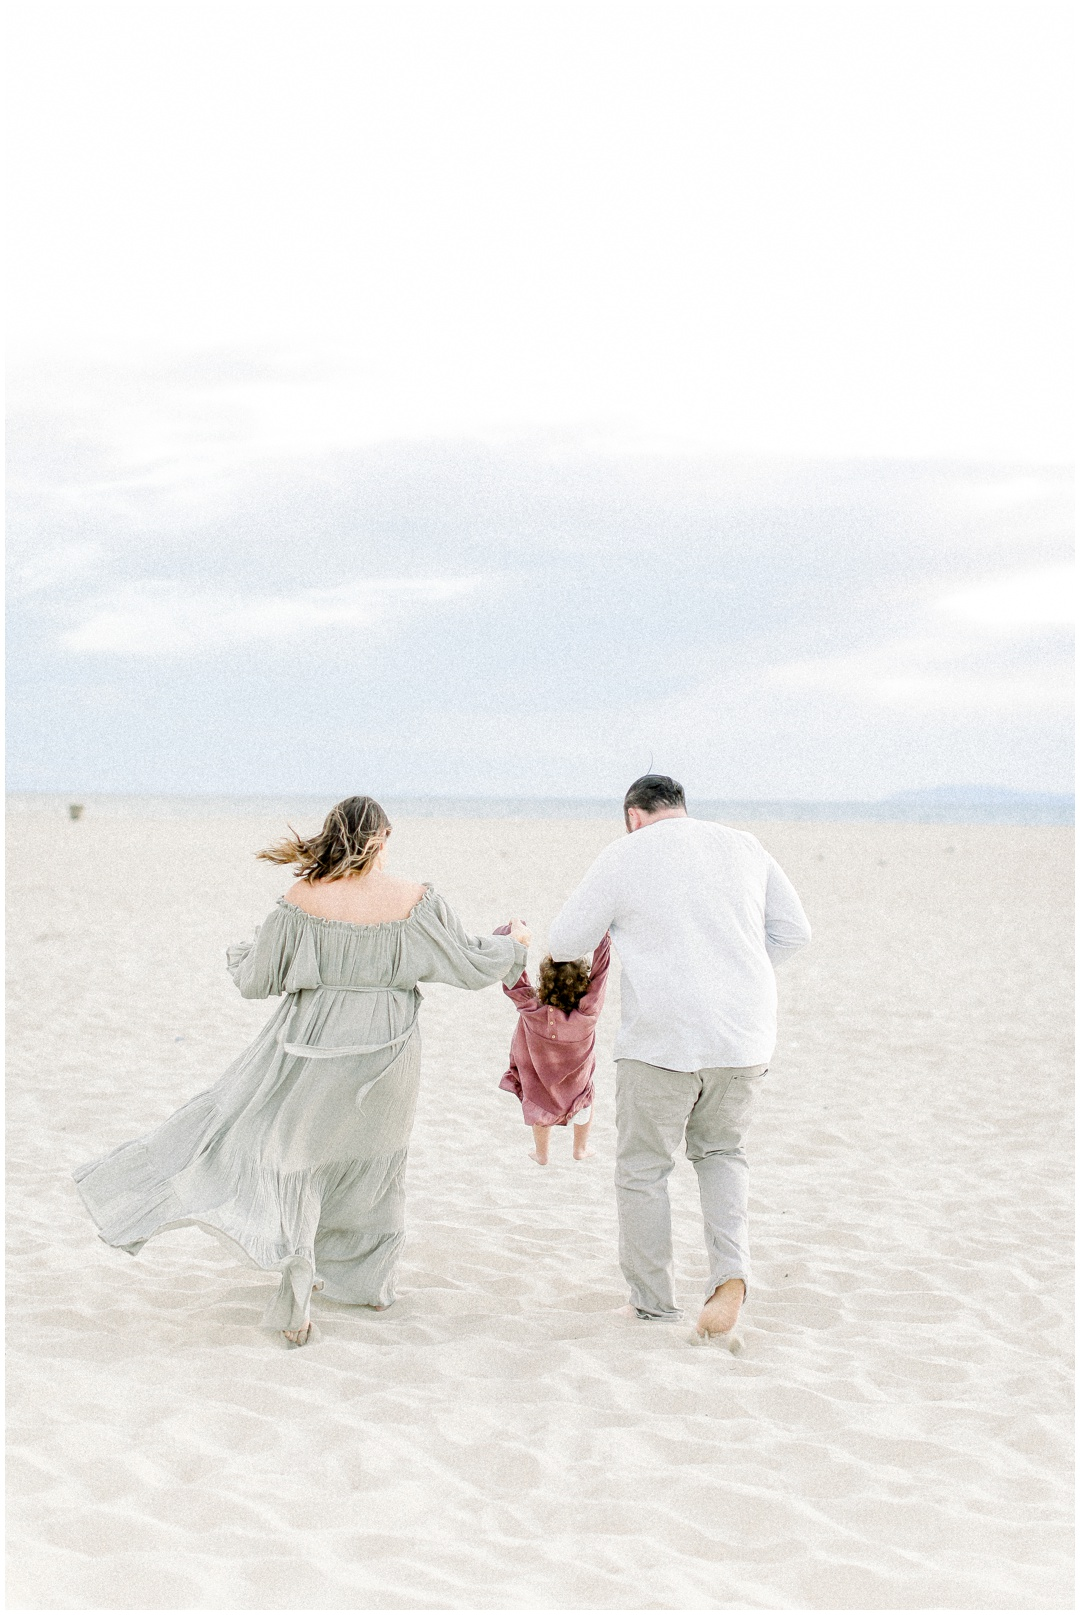 Newport_Beach_Newborn_Light_Airy_Natural_Photographer_Newport_Beach_Photographer_Orange_County_Family_Photographer_Cori_Kleckner_Photography_Huntington_Beach_Photographer_Family_OC_Newborn_Melissa_Scharf_Newborn_Family__3315.jpg